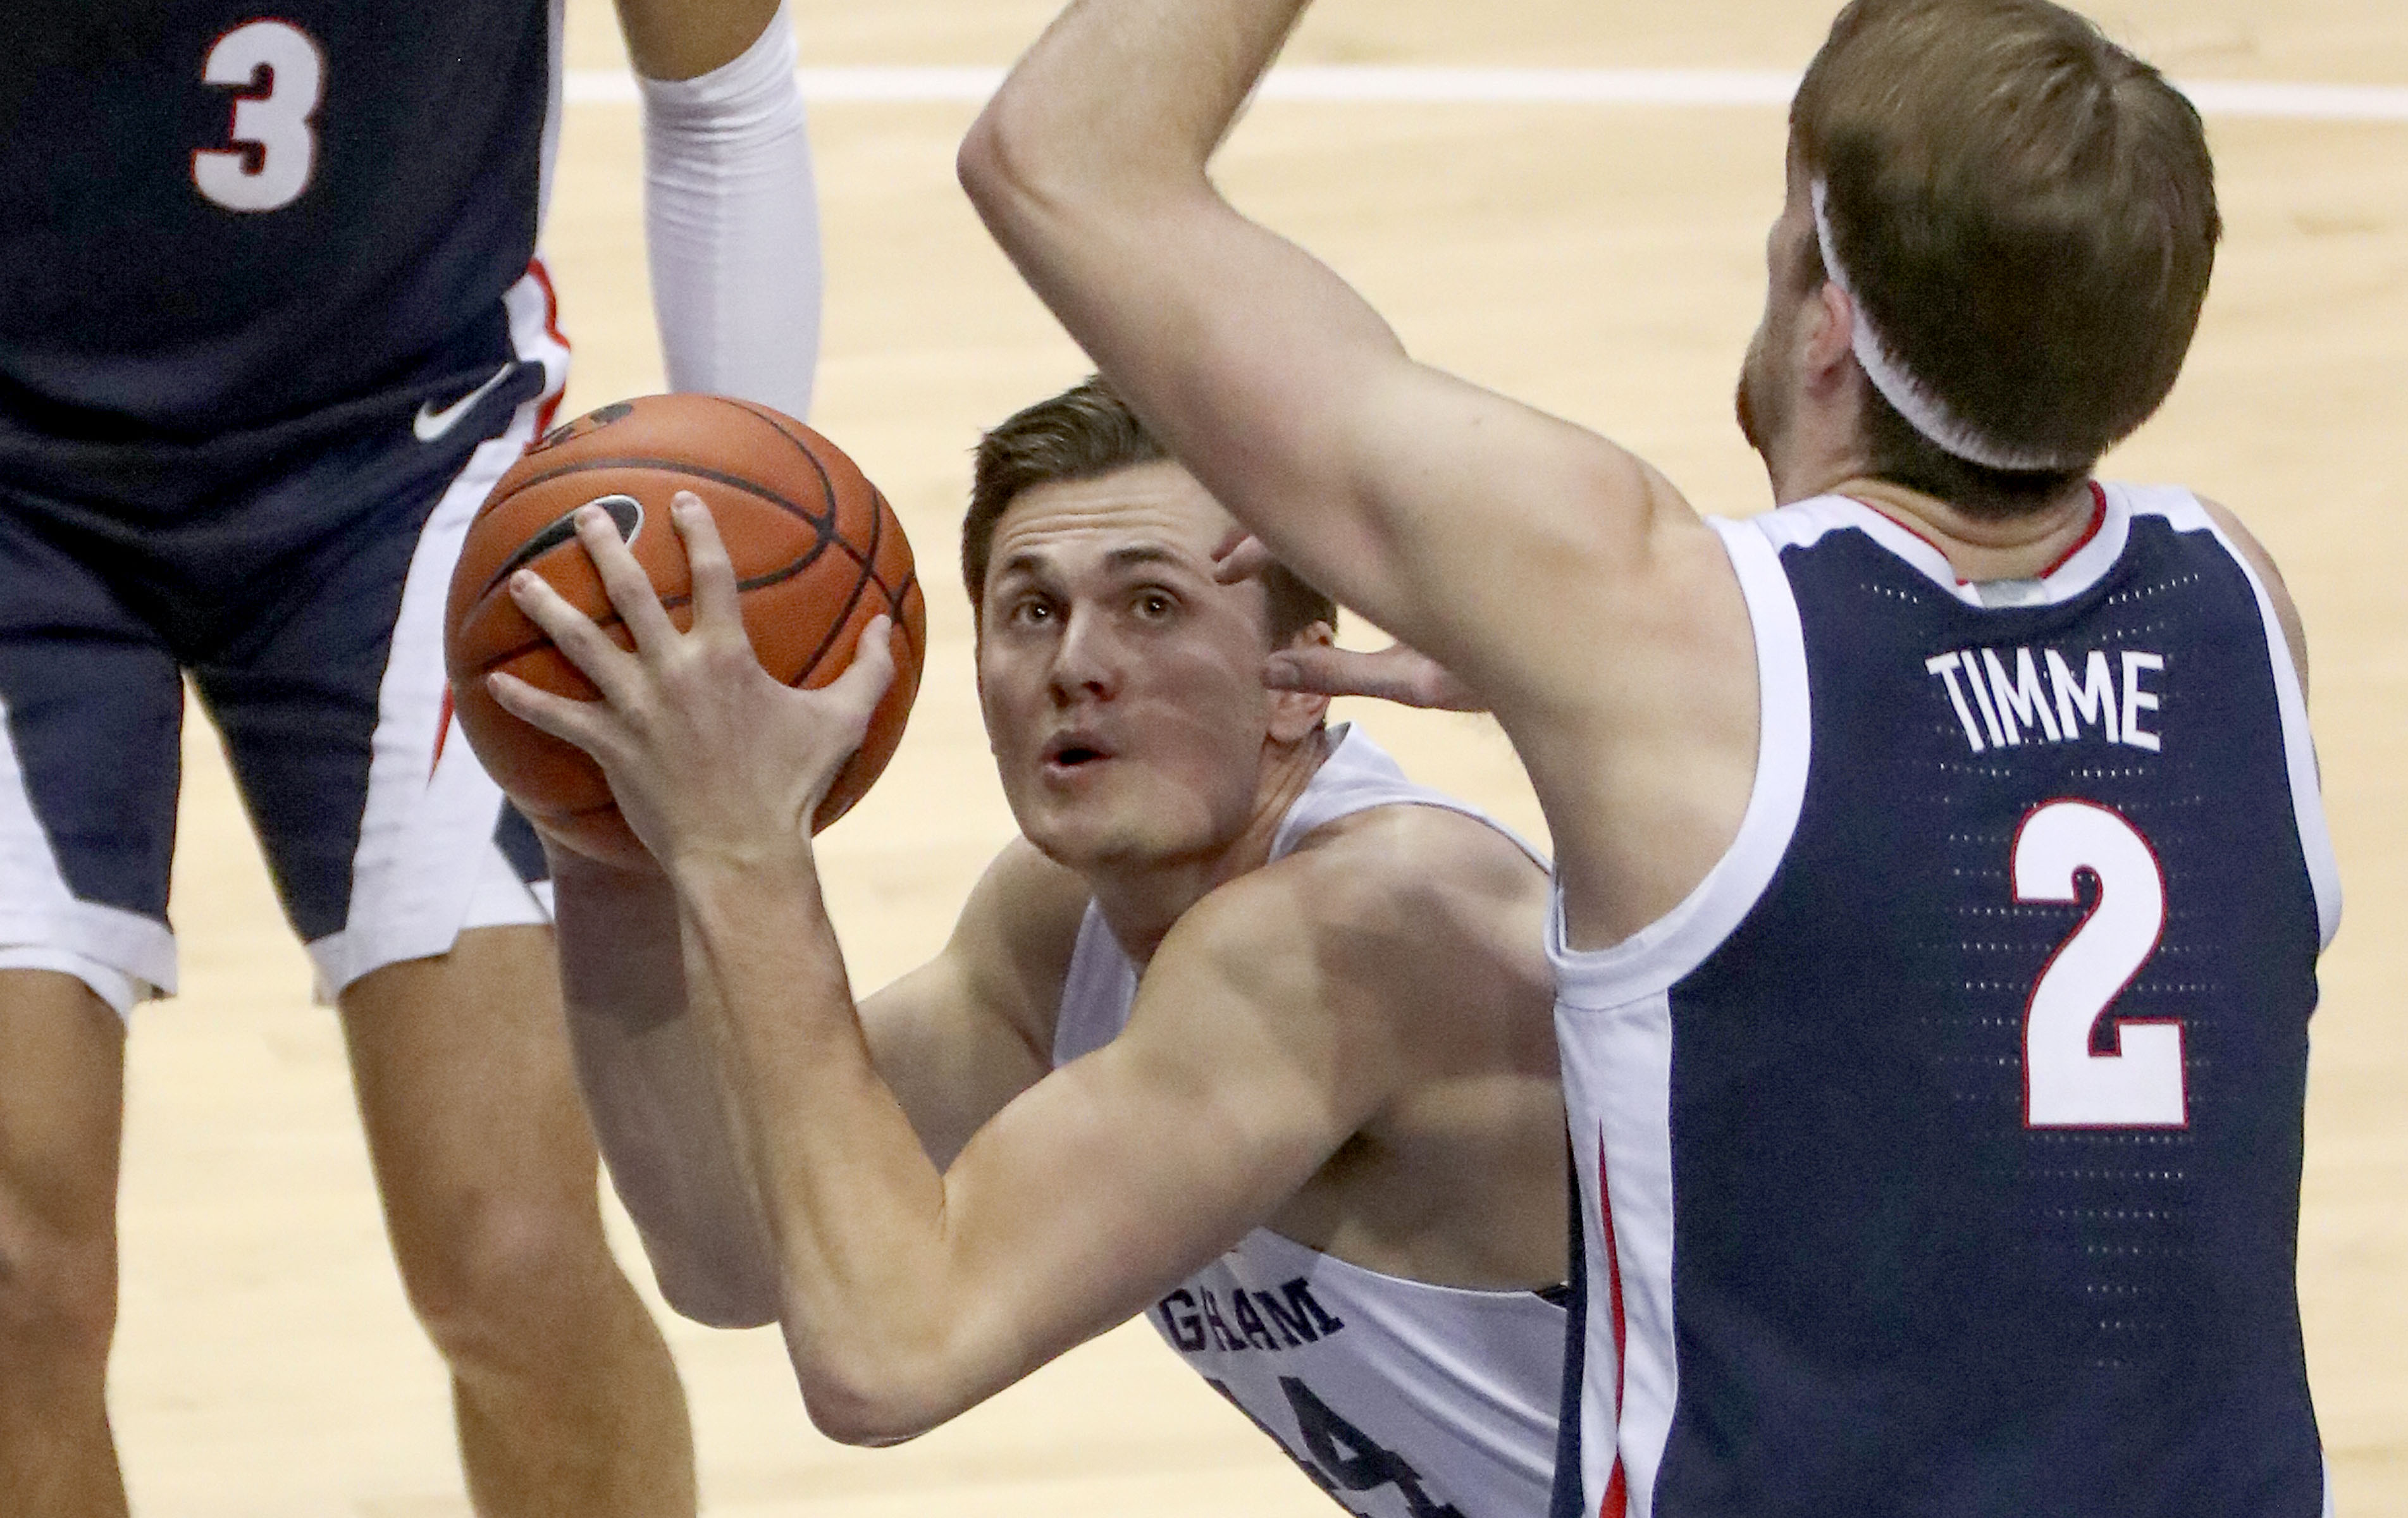 Brigham Young Cougars guard Connor Harding (44) shoots under Gonzaga Bulldogs forward Drew Timme (2) during a basketball game at the Marriott Center in Provo on Monday, Feb. 8, 2021. BYU lost 71-82.